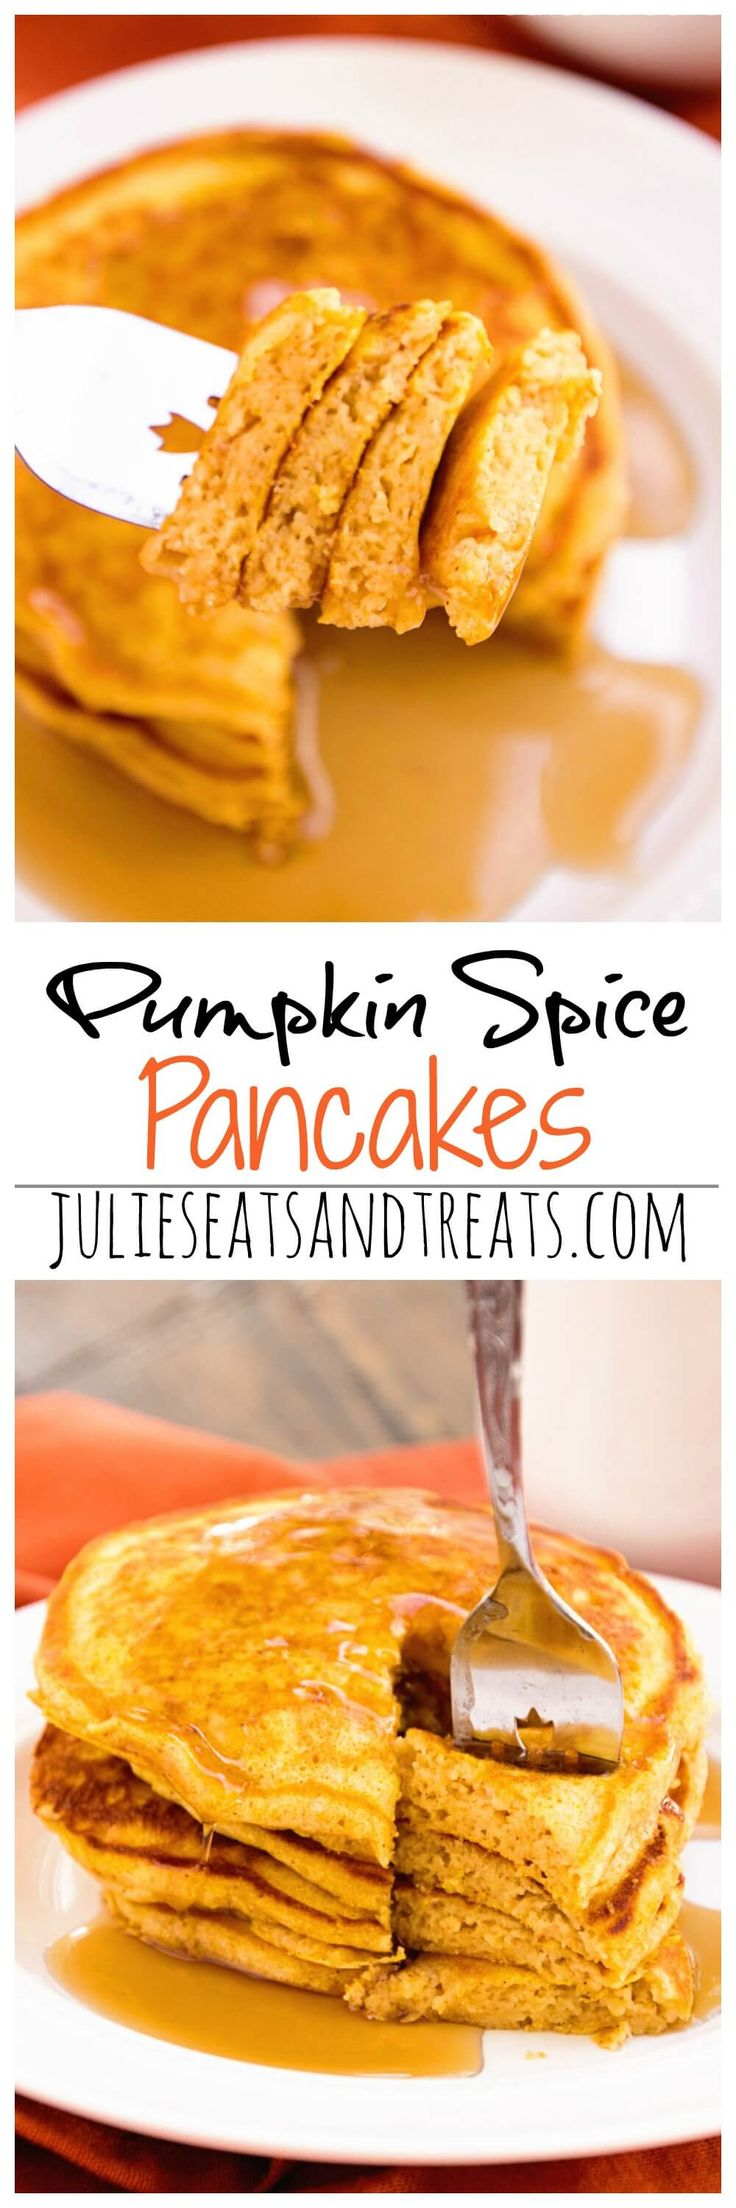 Pumpkin Spice Pancakes Recipe ~ Perfectly Light & Fluffy Homemade Pancakes with the Perfect Amount of Pumpkin & Spices!